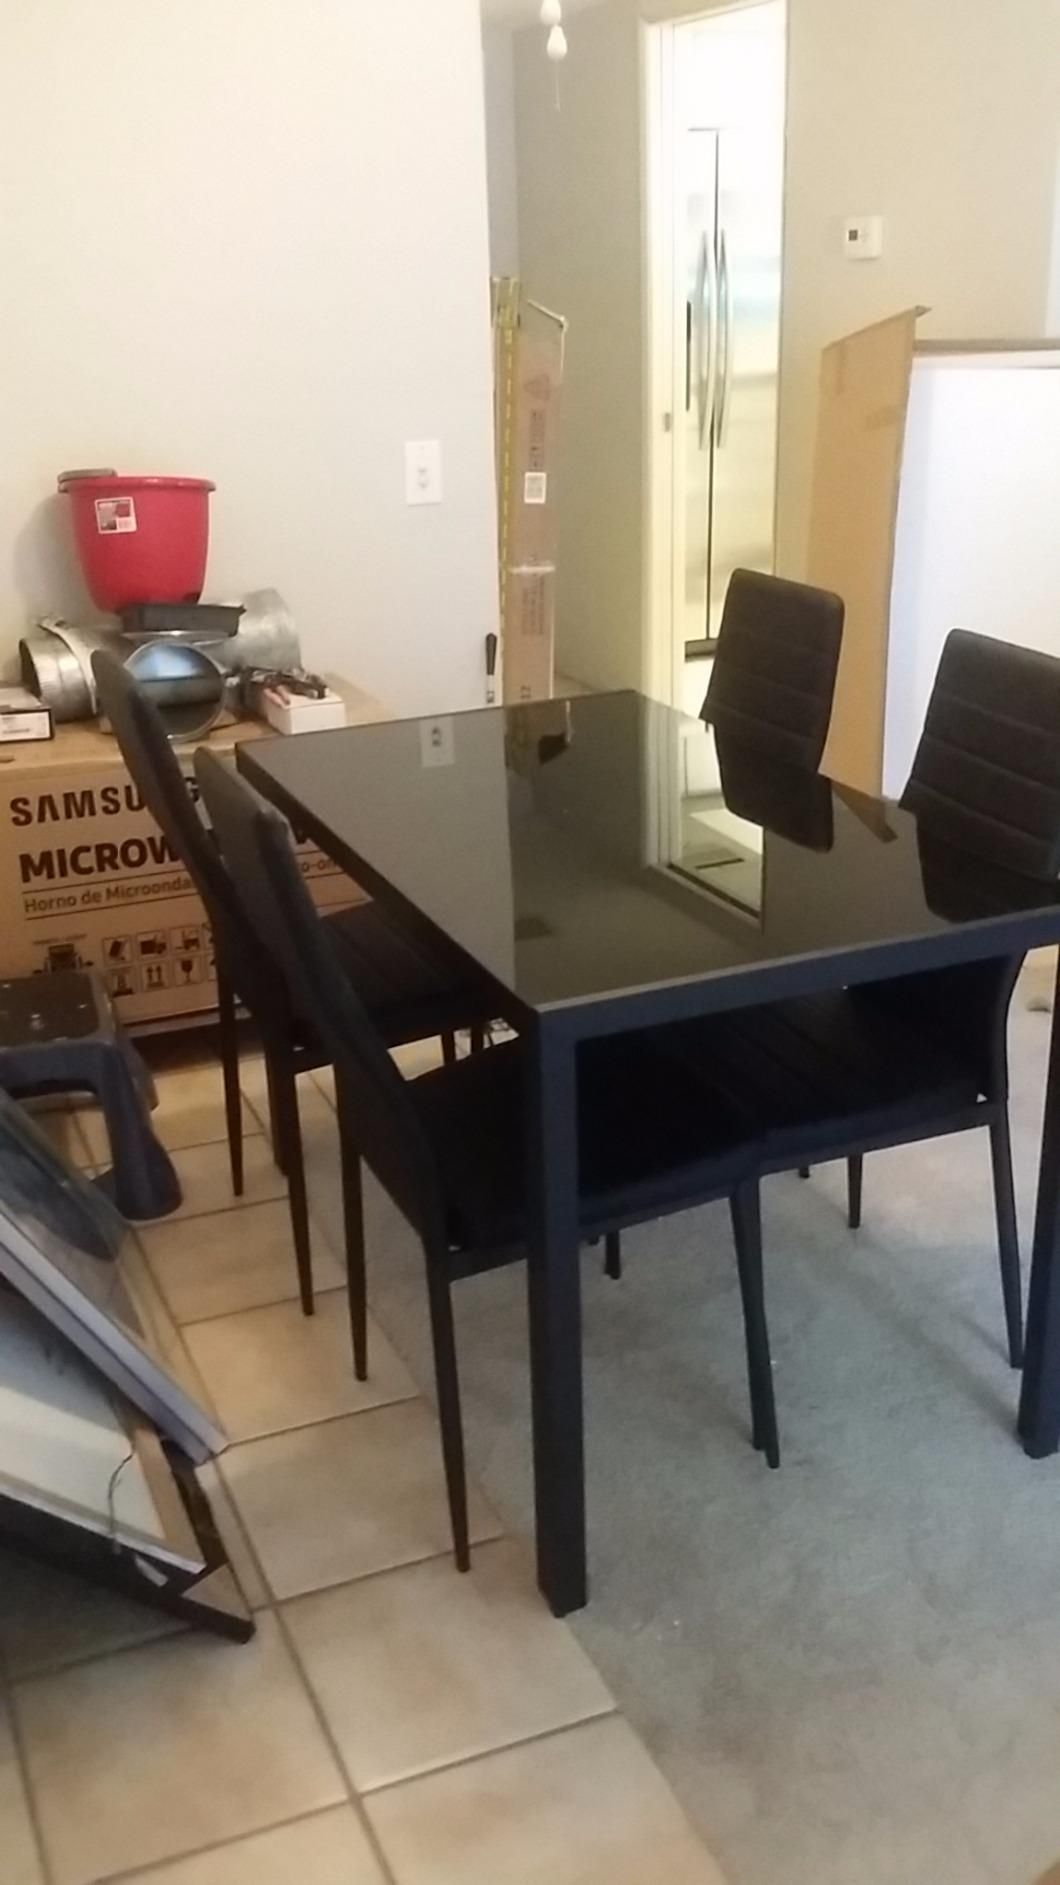 Kitchen Dining Chairs Cabinets Colorado Springs Amazon Com Giantex 5 Piece Set Glass Metal Table And 4 Breakfast Furniture Chair Sets